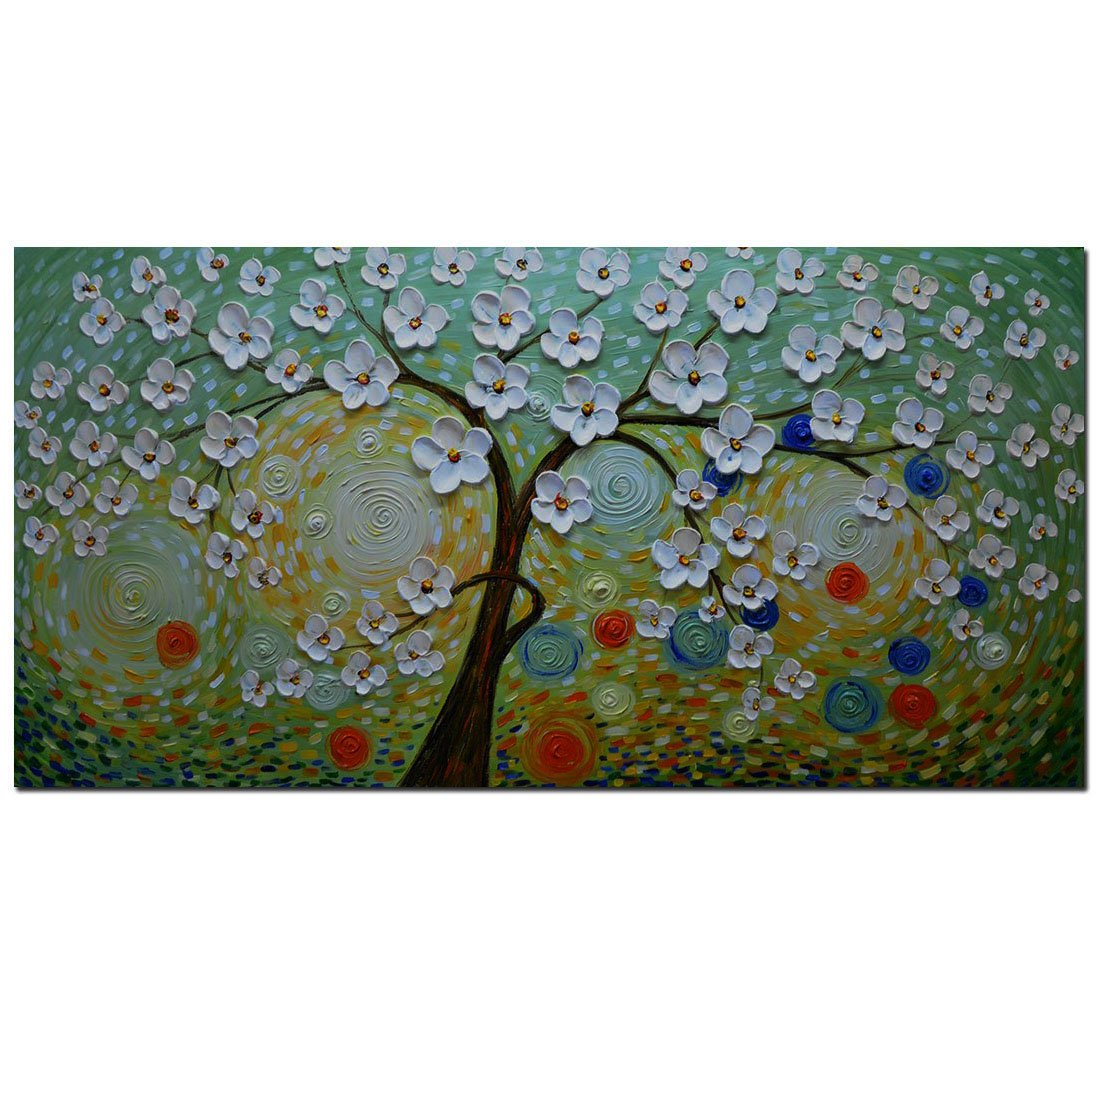 Asdam Art 100% Hand Painted 3D Paintings Green Abstract Artwork for Wall Decor Handade Oil Paintings on Canvas Ready to Hang Modern Home Decorations Tree Wall Art for living Room(20X40 inch)